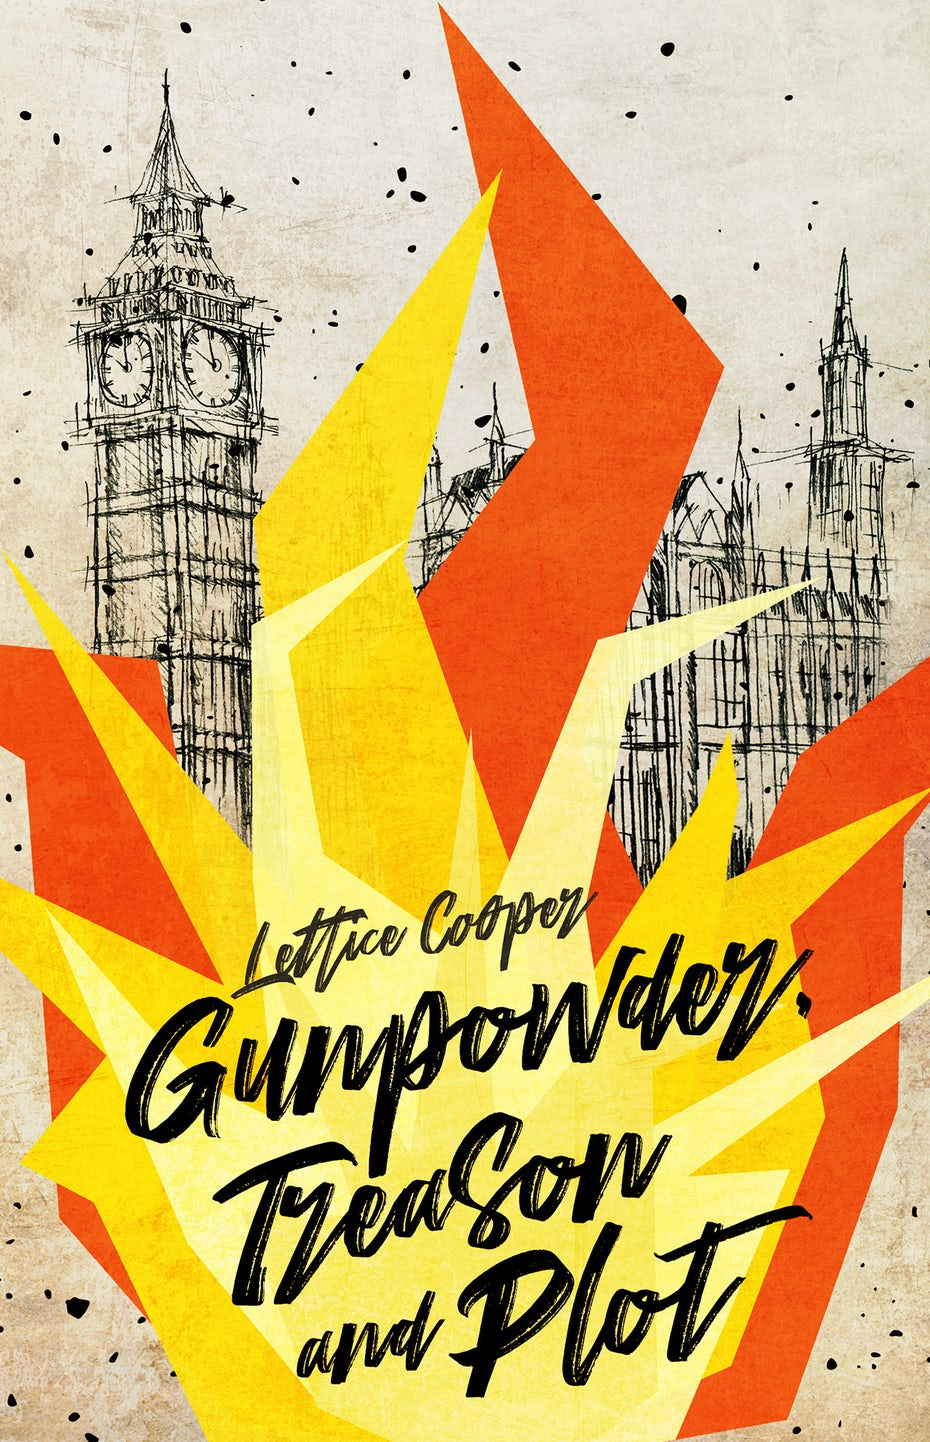 Gunpowder treason and plot book cover